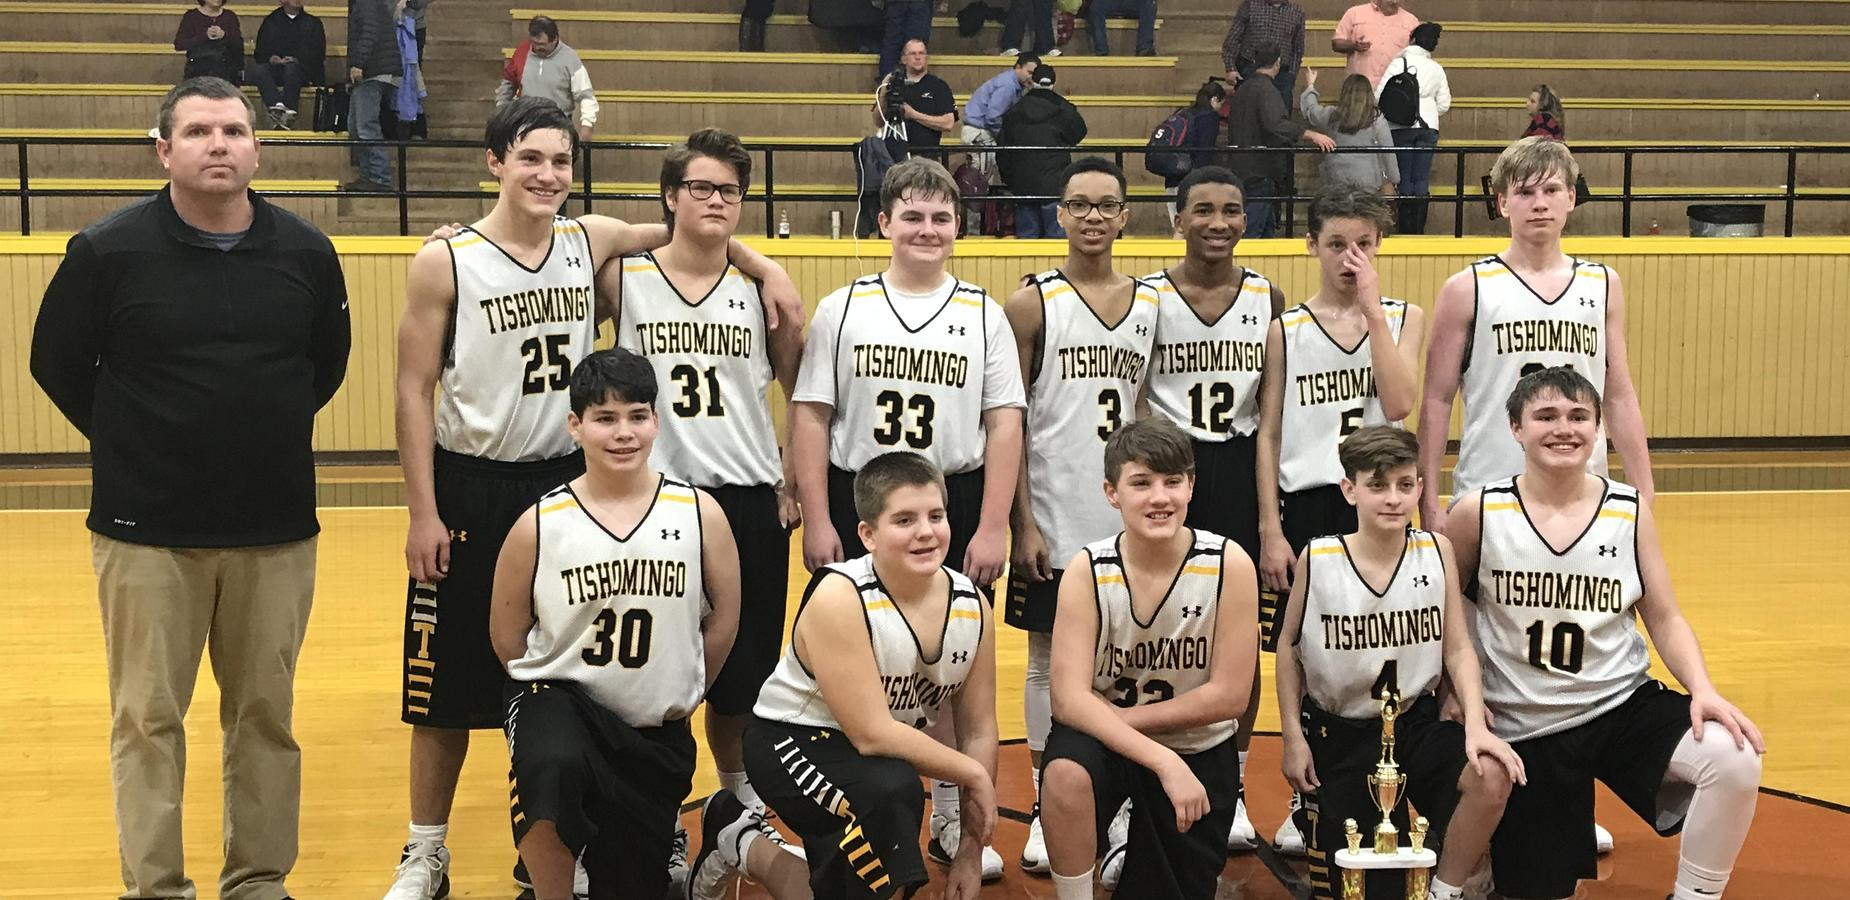 County Champs - Tishomingo 8th Grade Boys